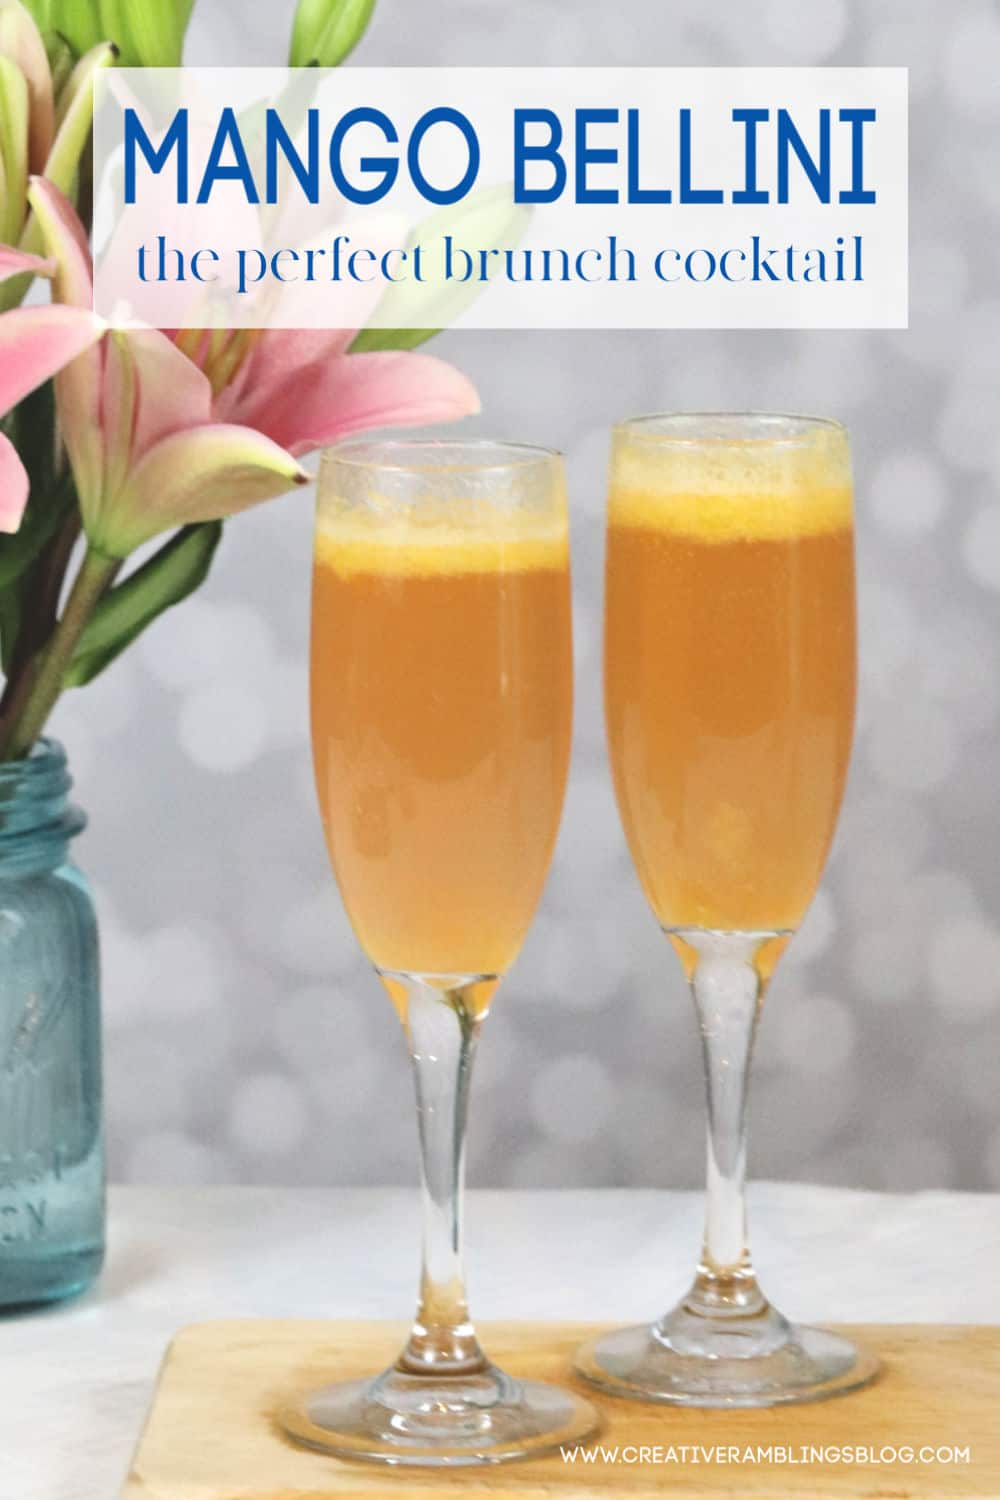 mango bellini cocktail recipe the perfect brunch cocktail